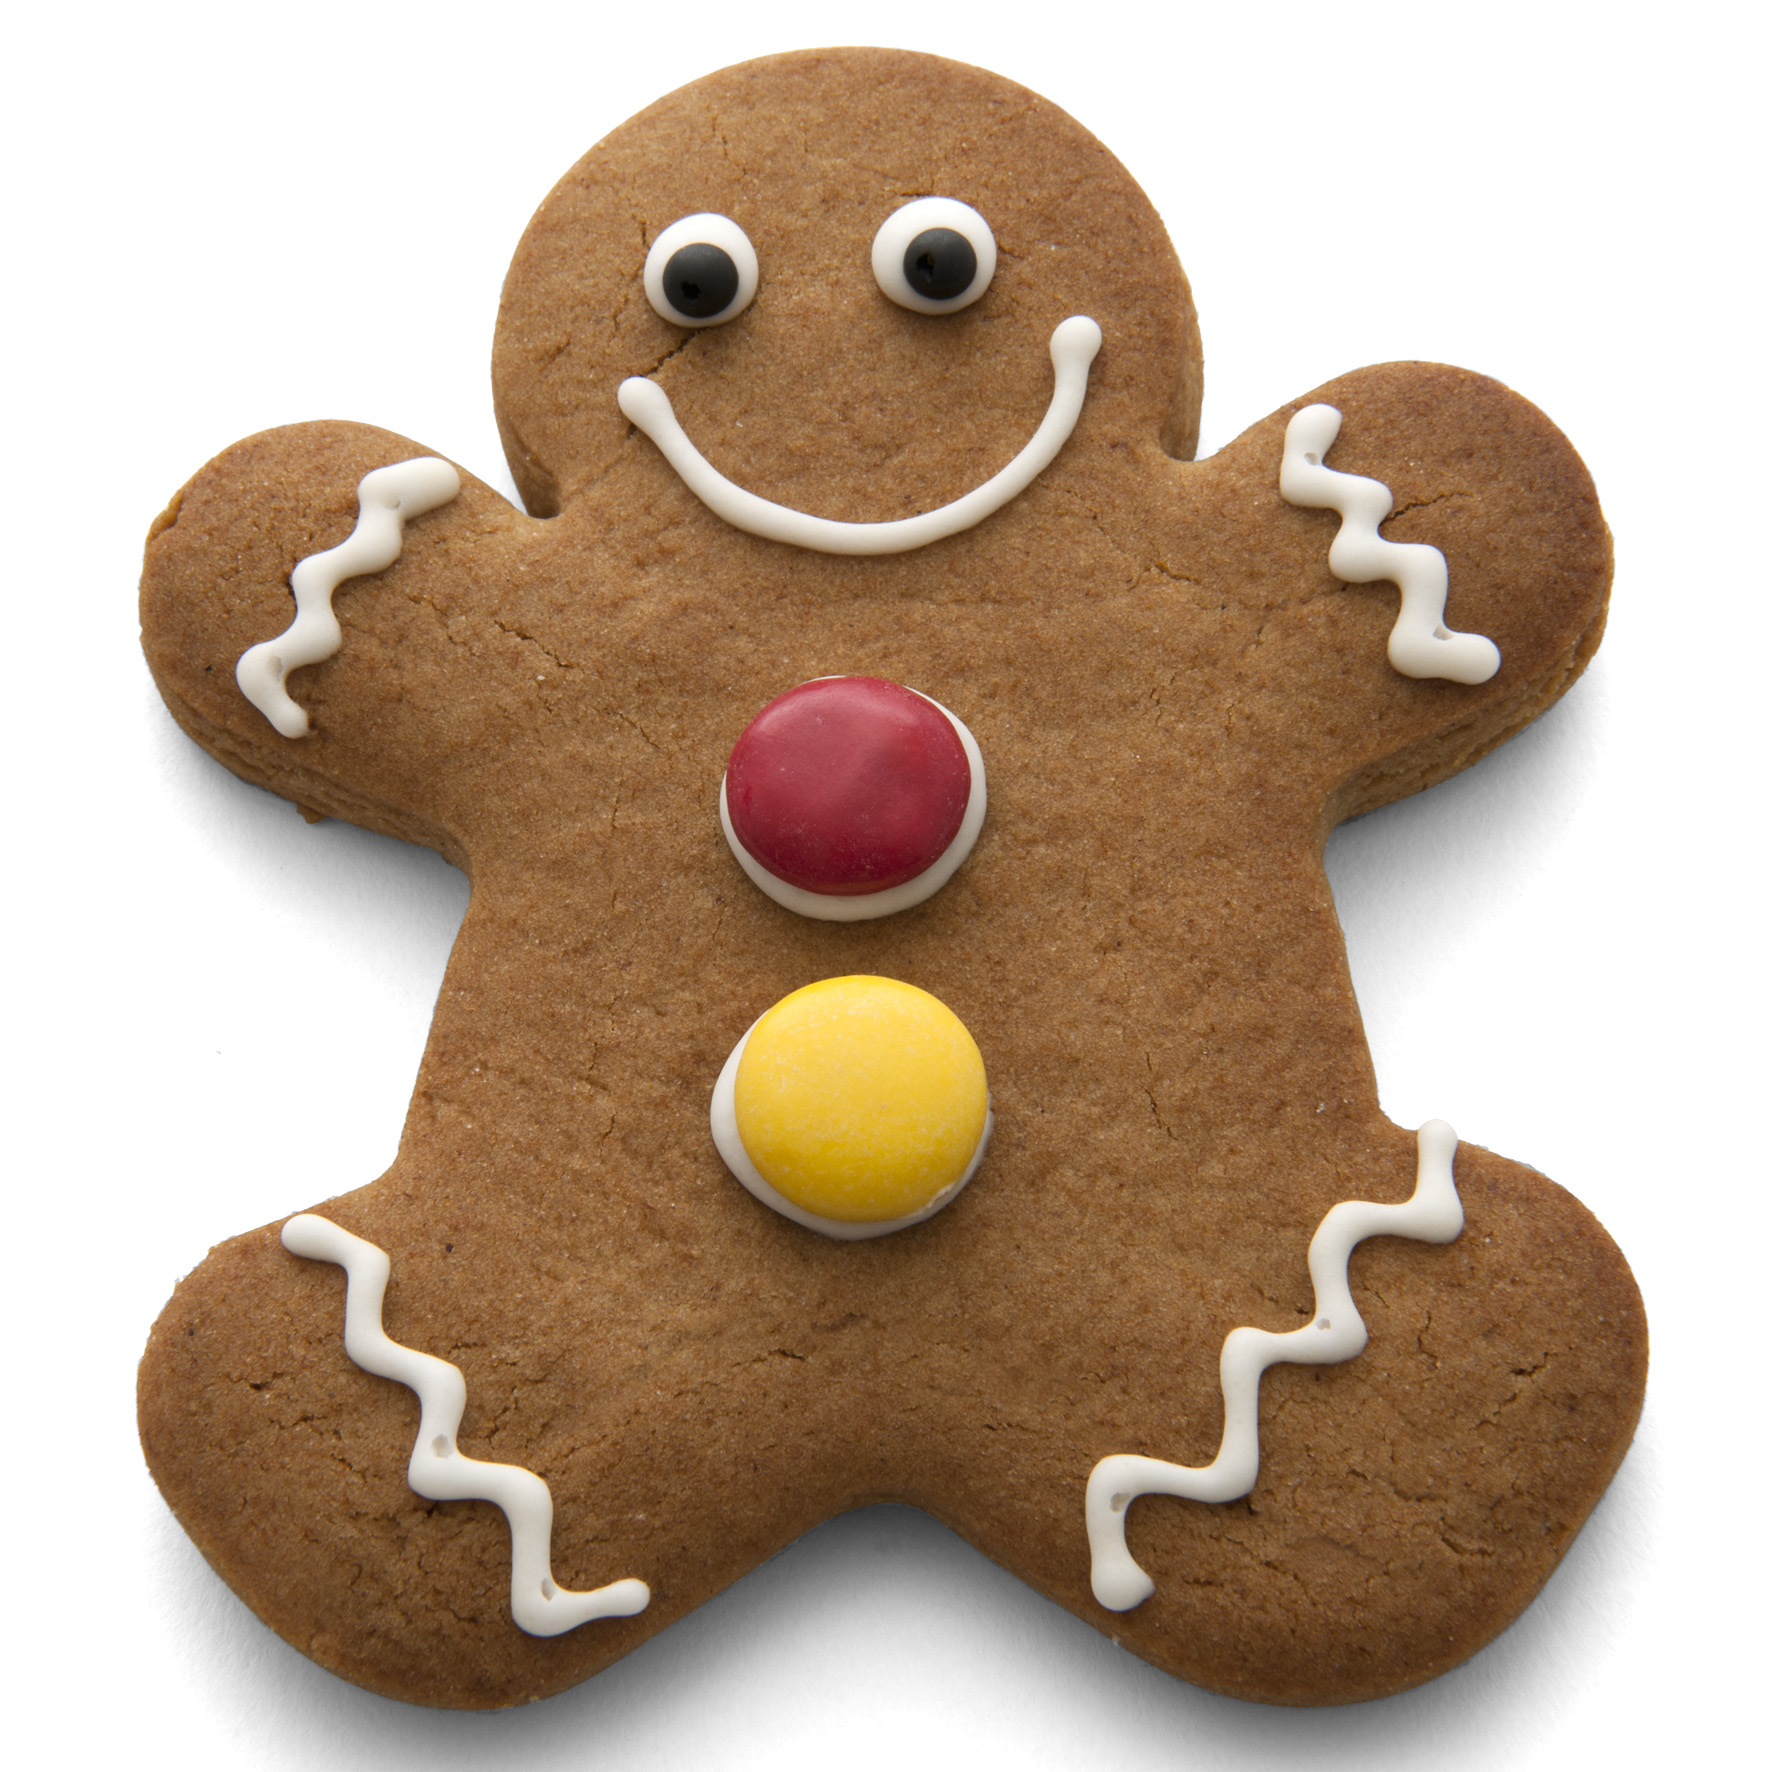 Gingerbread Contest - Entry Forms Available Now